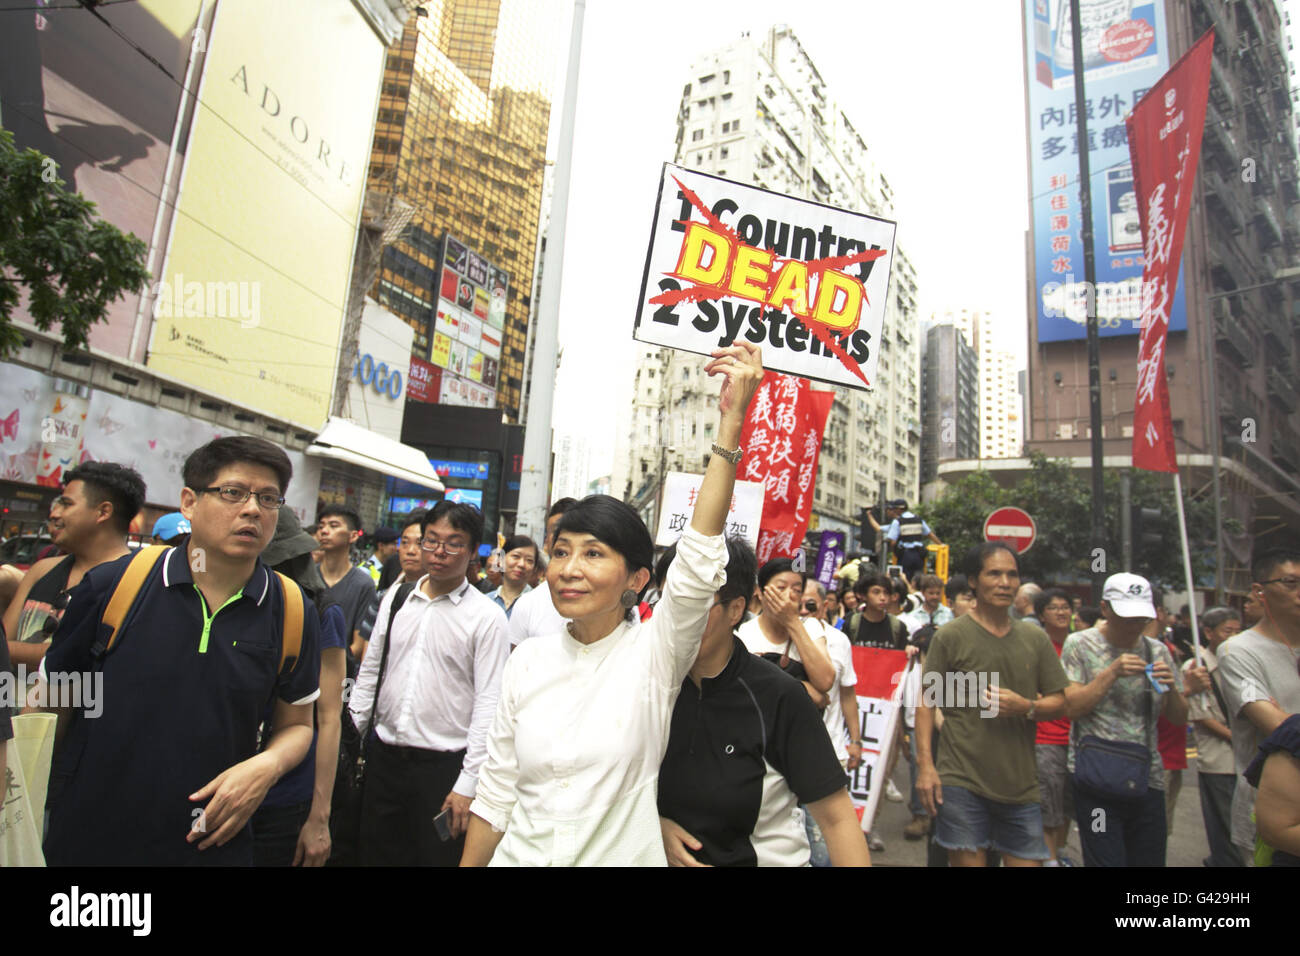 Hong Kong. 18th June, 2016.  A Hong Kong lawmaker, Claudia Mo (C) raise banner in protest during march to show support Stock Photo